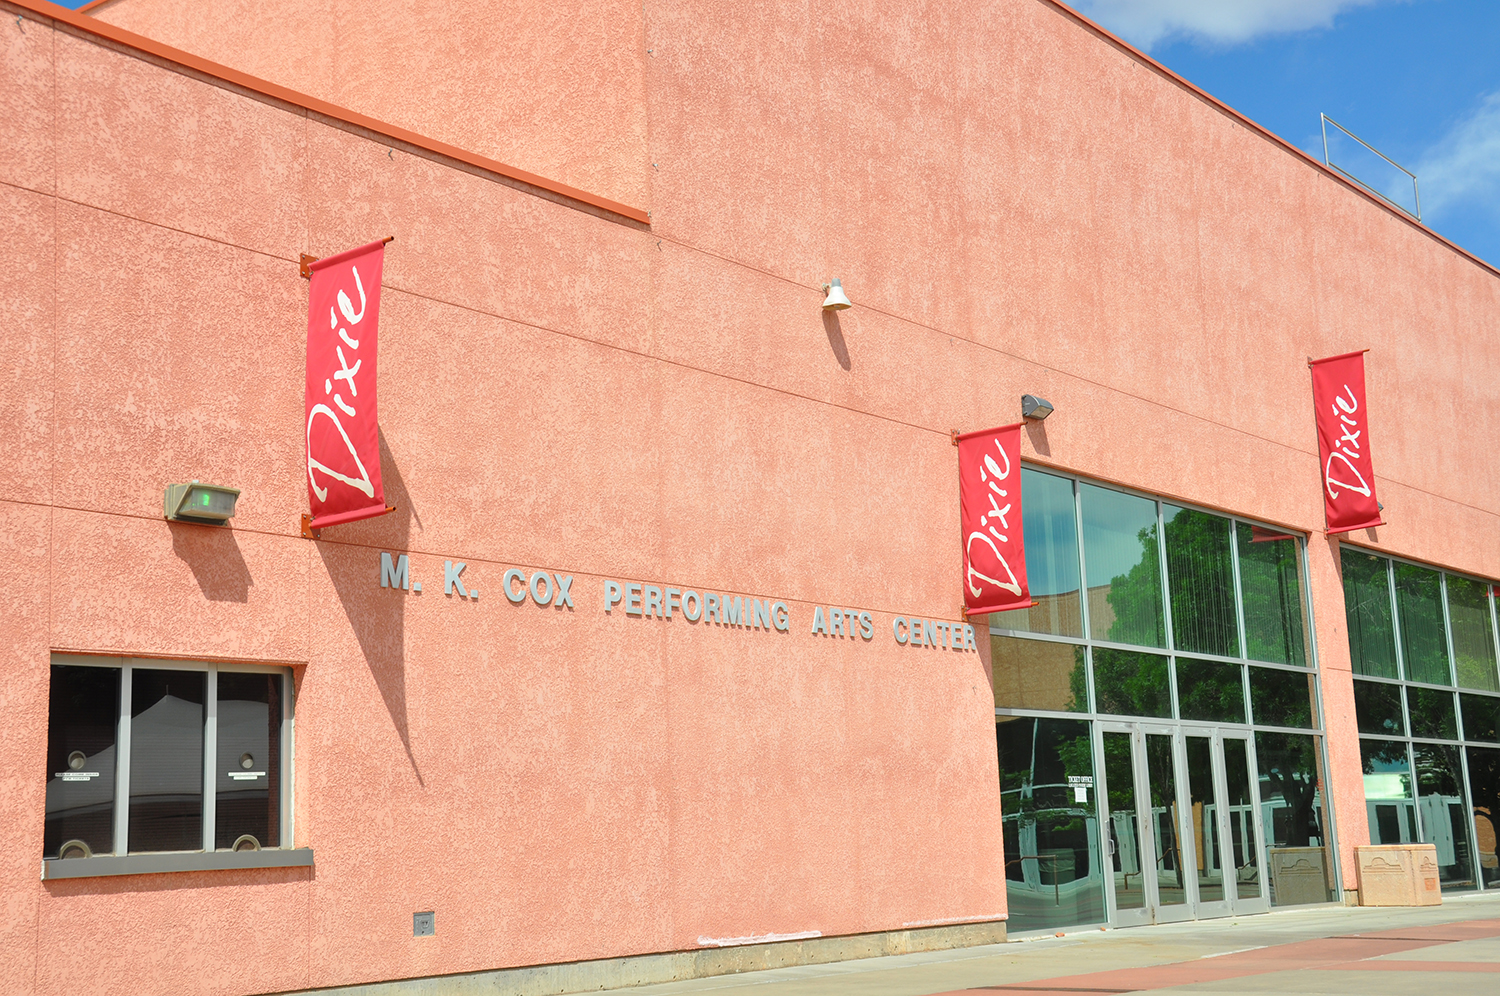 M.K. Cox Performing Arts Center, Dixie State University, St. George, Utah, date not specified   Photo courtesy of Dixie State University April 2016, St. George News